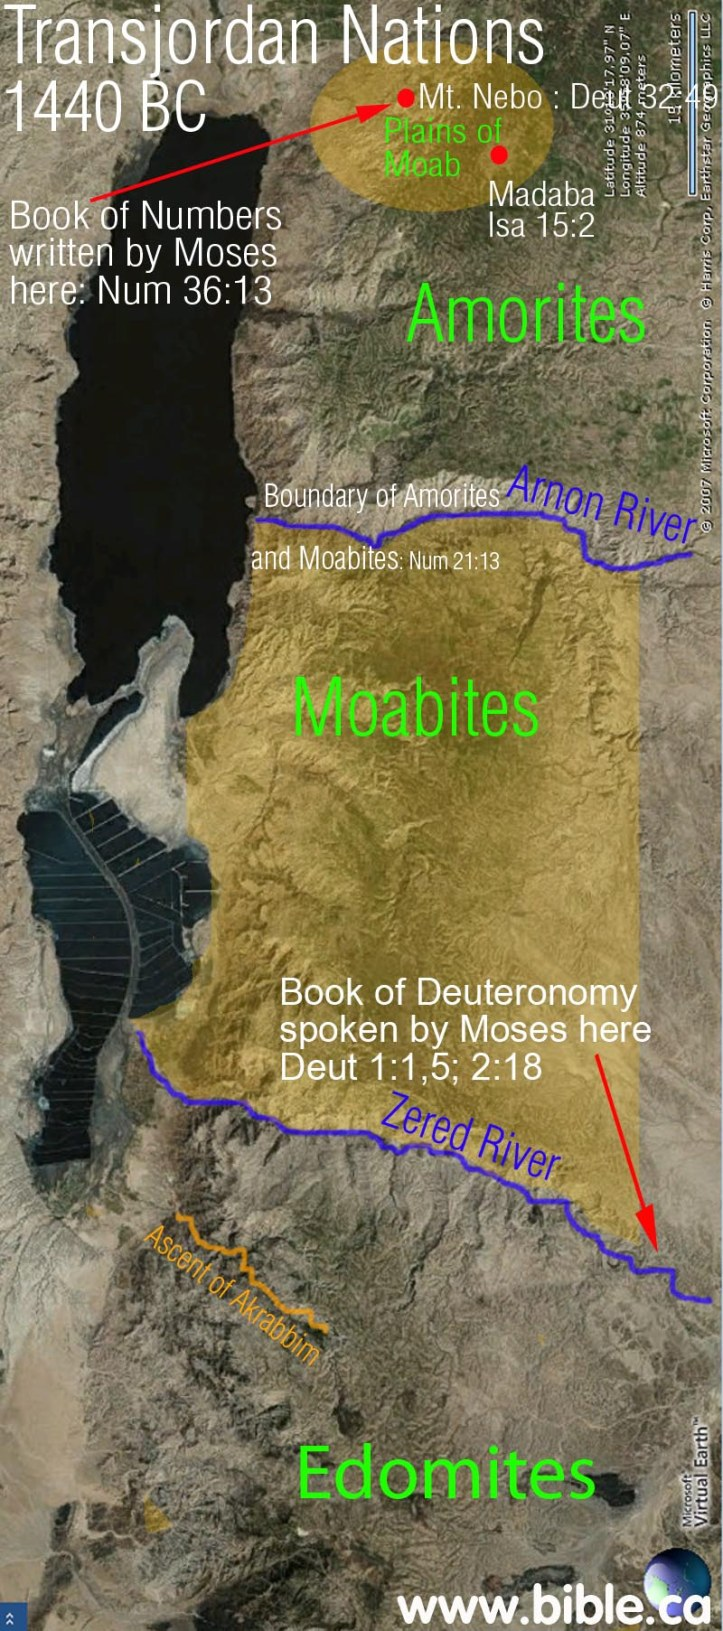 Bible.ca, presents possible exact points of interest in where the March of Israel could've taken place.